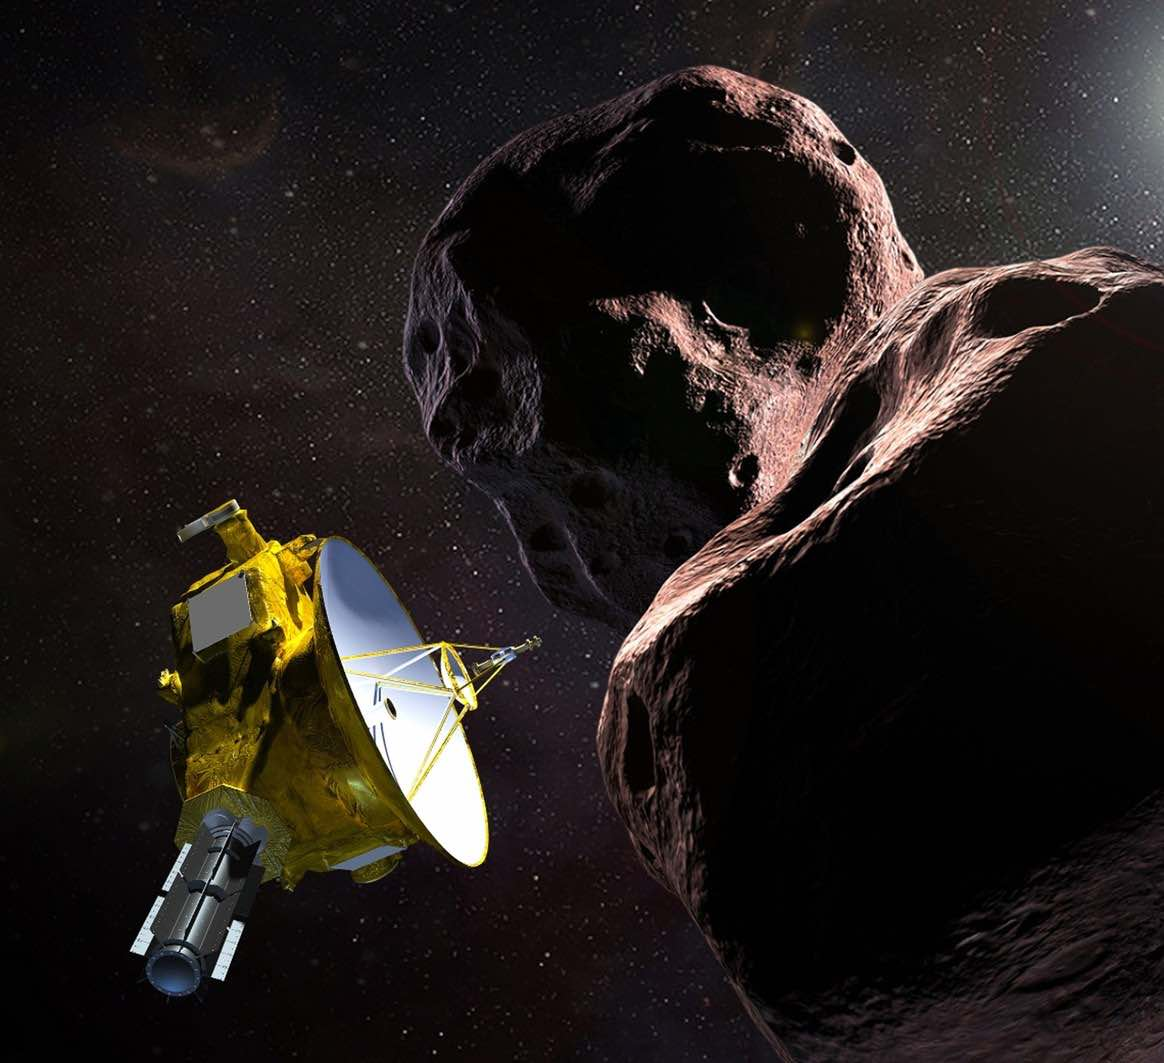 Latest News Updates: New Horizons Ultima Thule Flyby Updates, Report